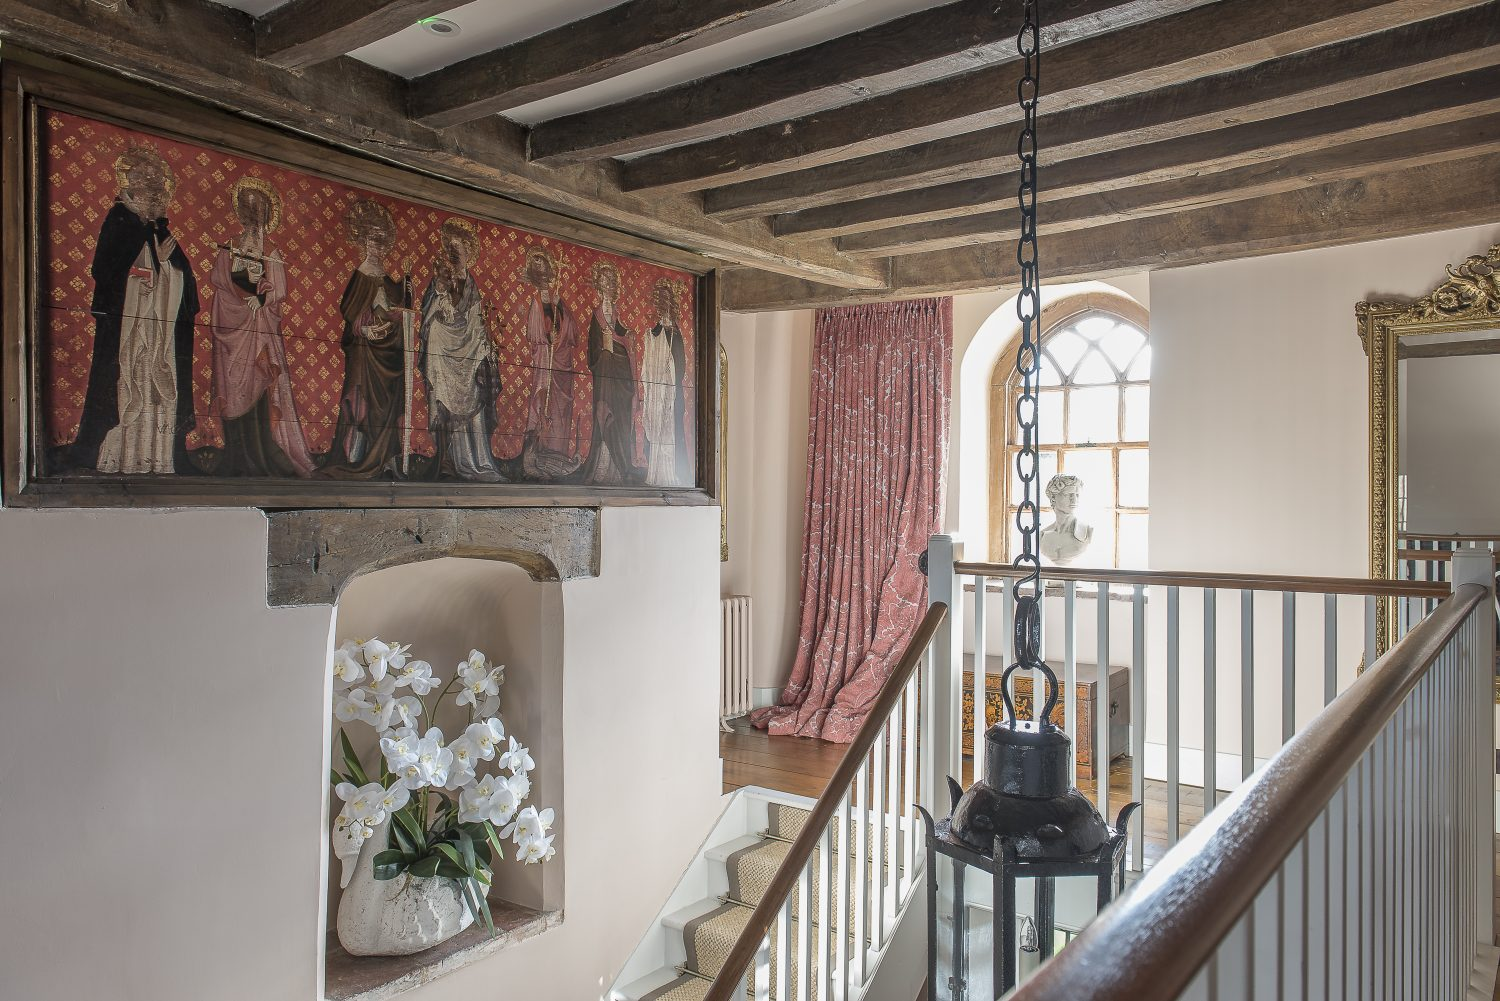 The mural is a replica of the very rare painted altarpiece found during a restoration of Battel Hall in the 1860s. The original is in Leeds Castle chapel